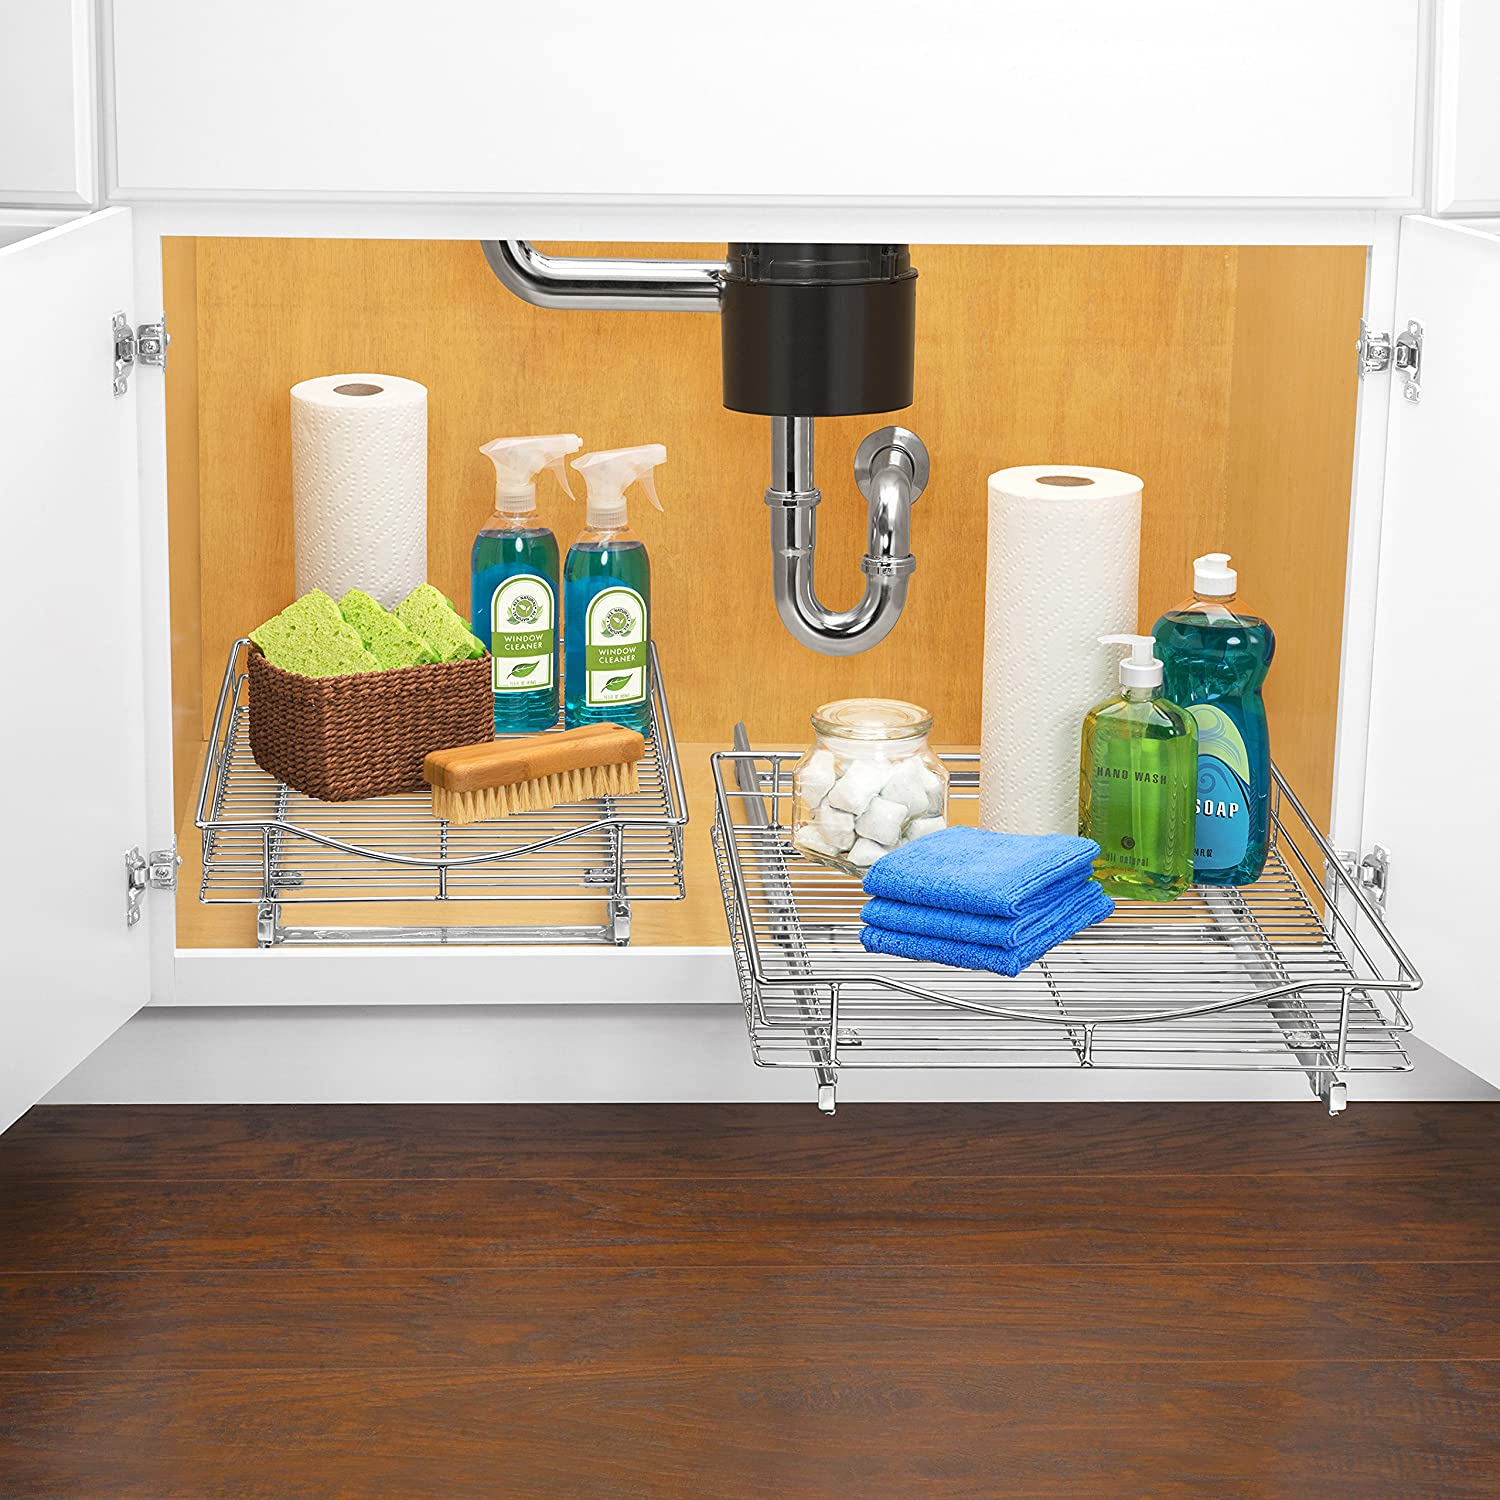 11 inch wide x 18 inch deep Multiple Lynk Professional Slide Out Cabinet Organizer Pull Out Under Cabinet Sliding Shelf Chrome